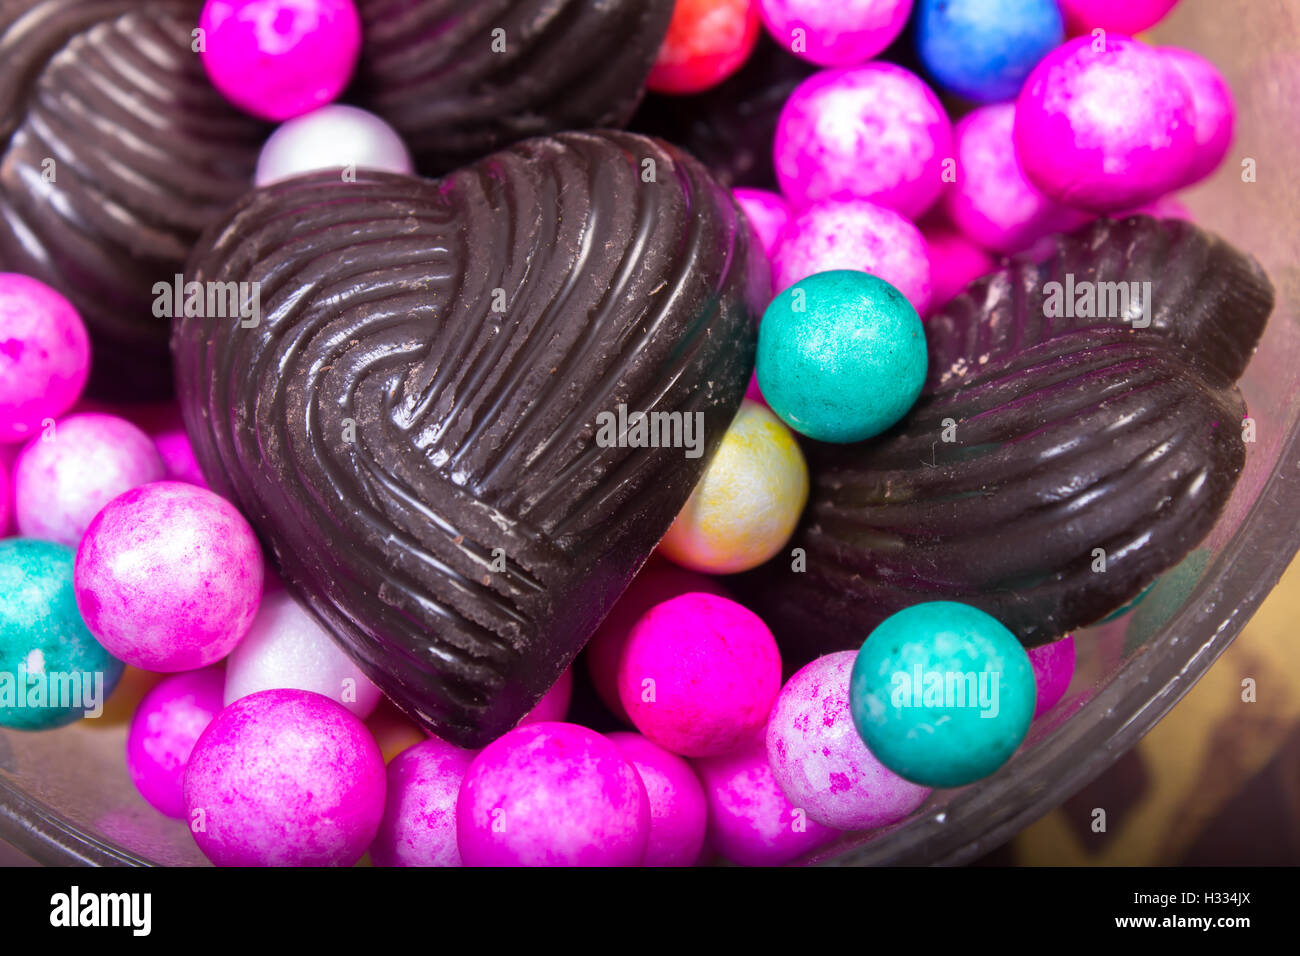 Home Made Chocolates With Decorated Small Balls   Stock Image